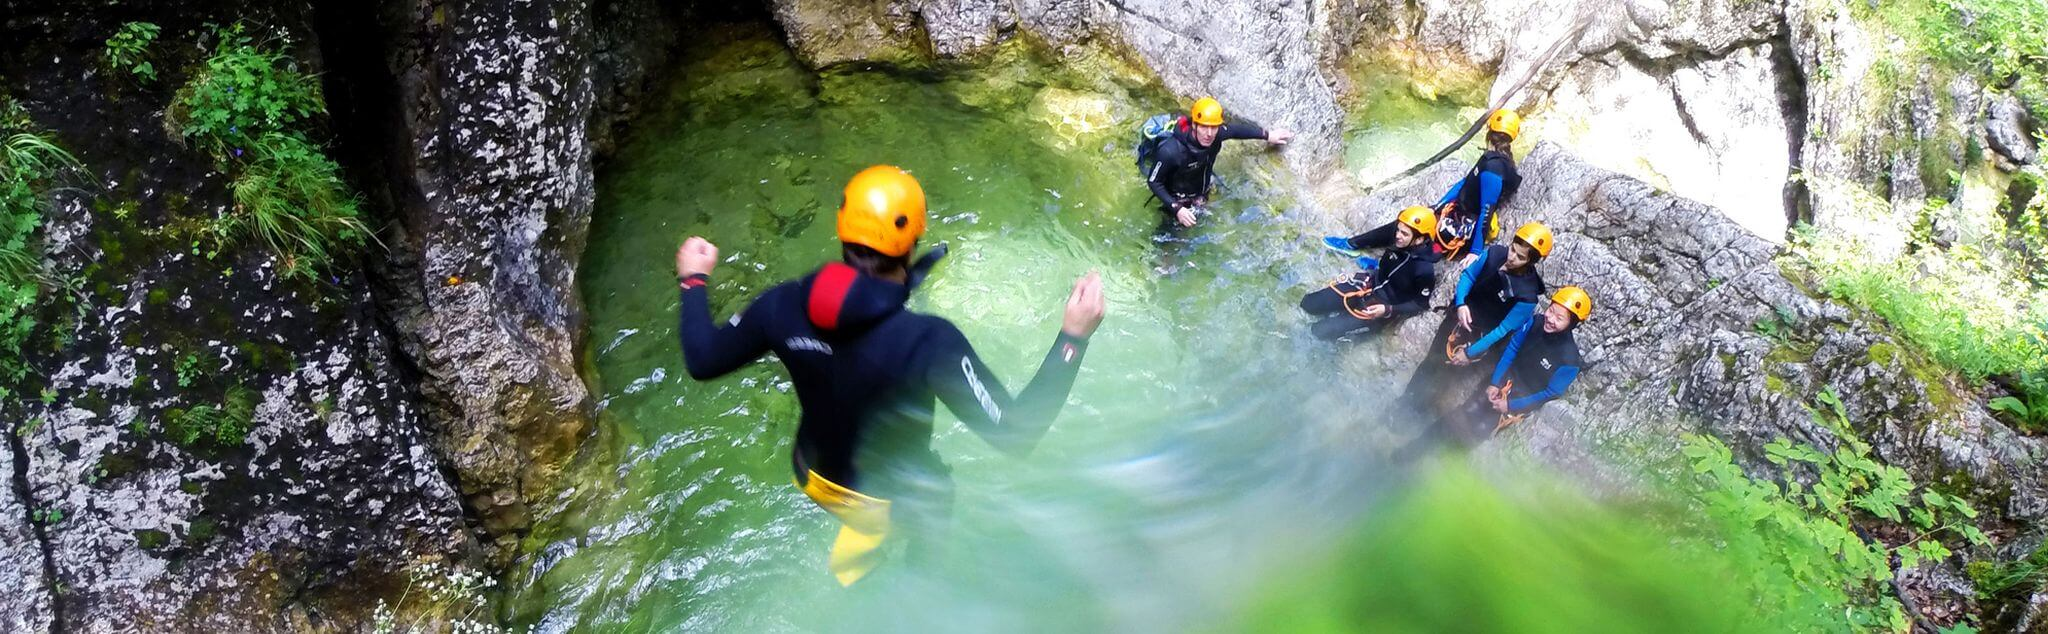 Canyoning a Messina